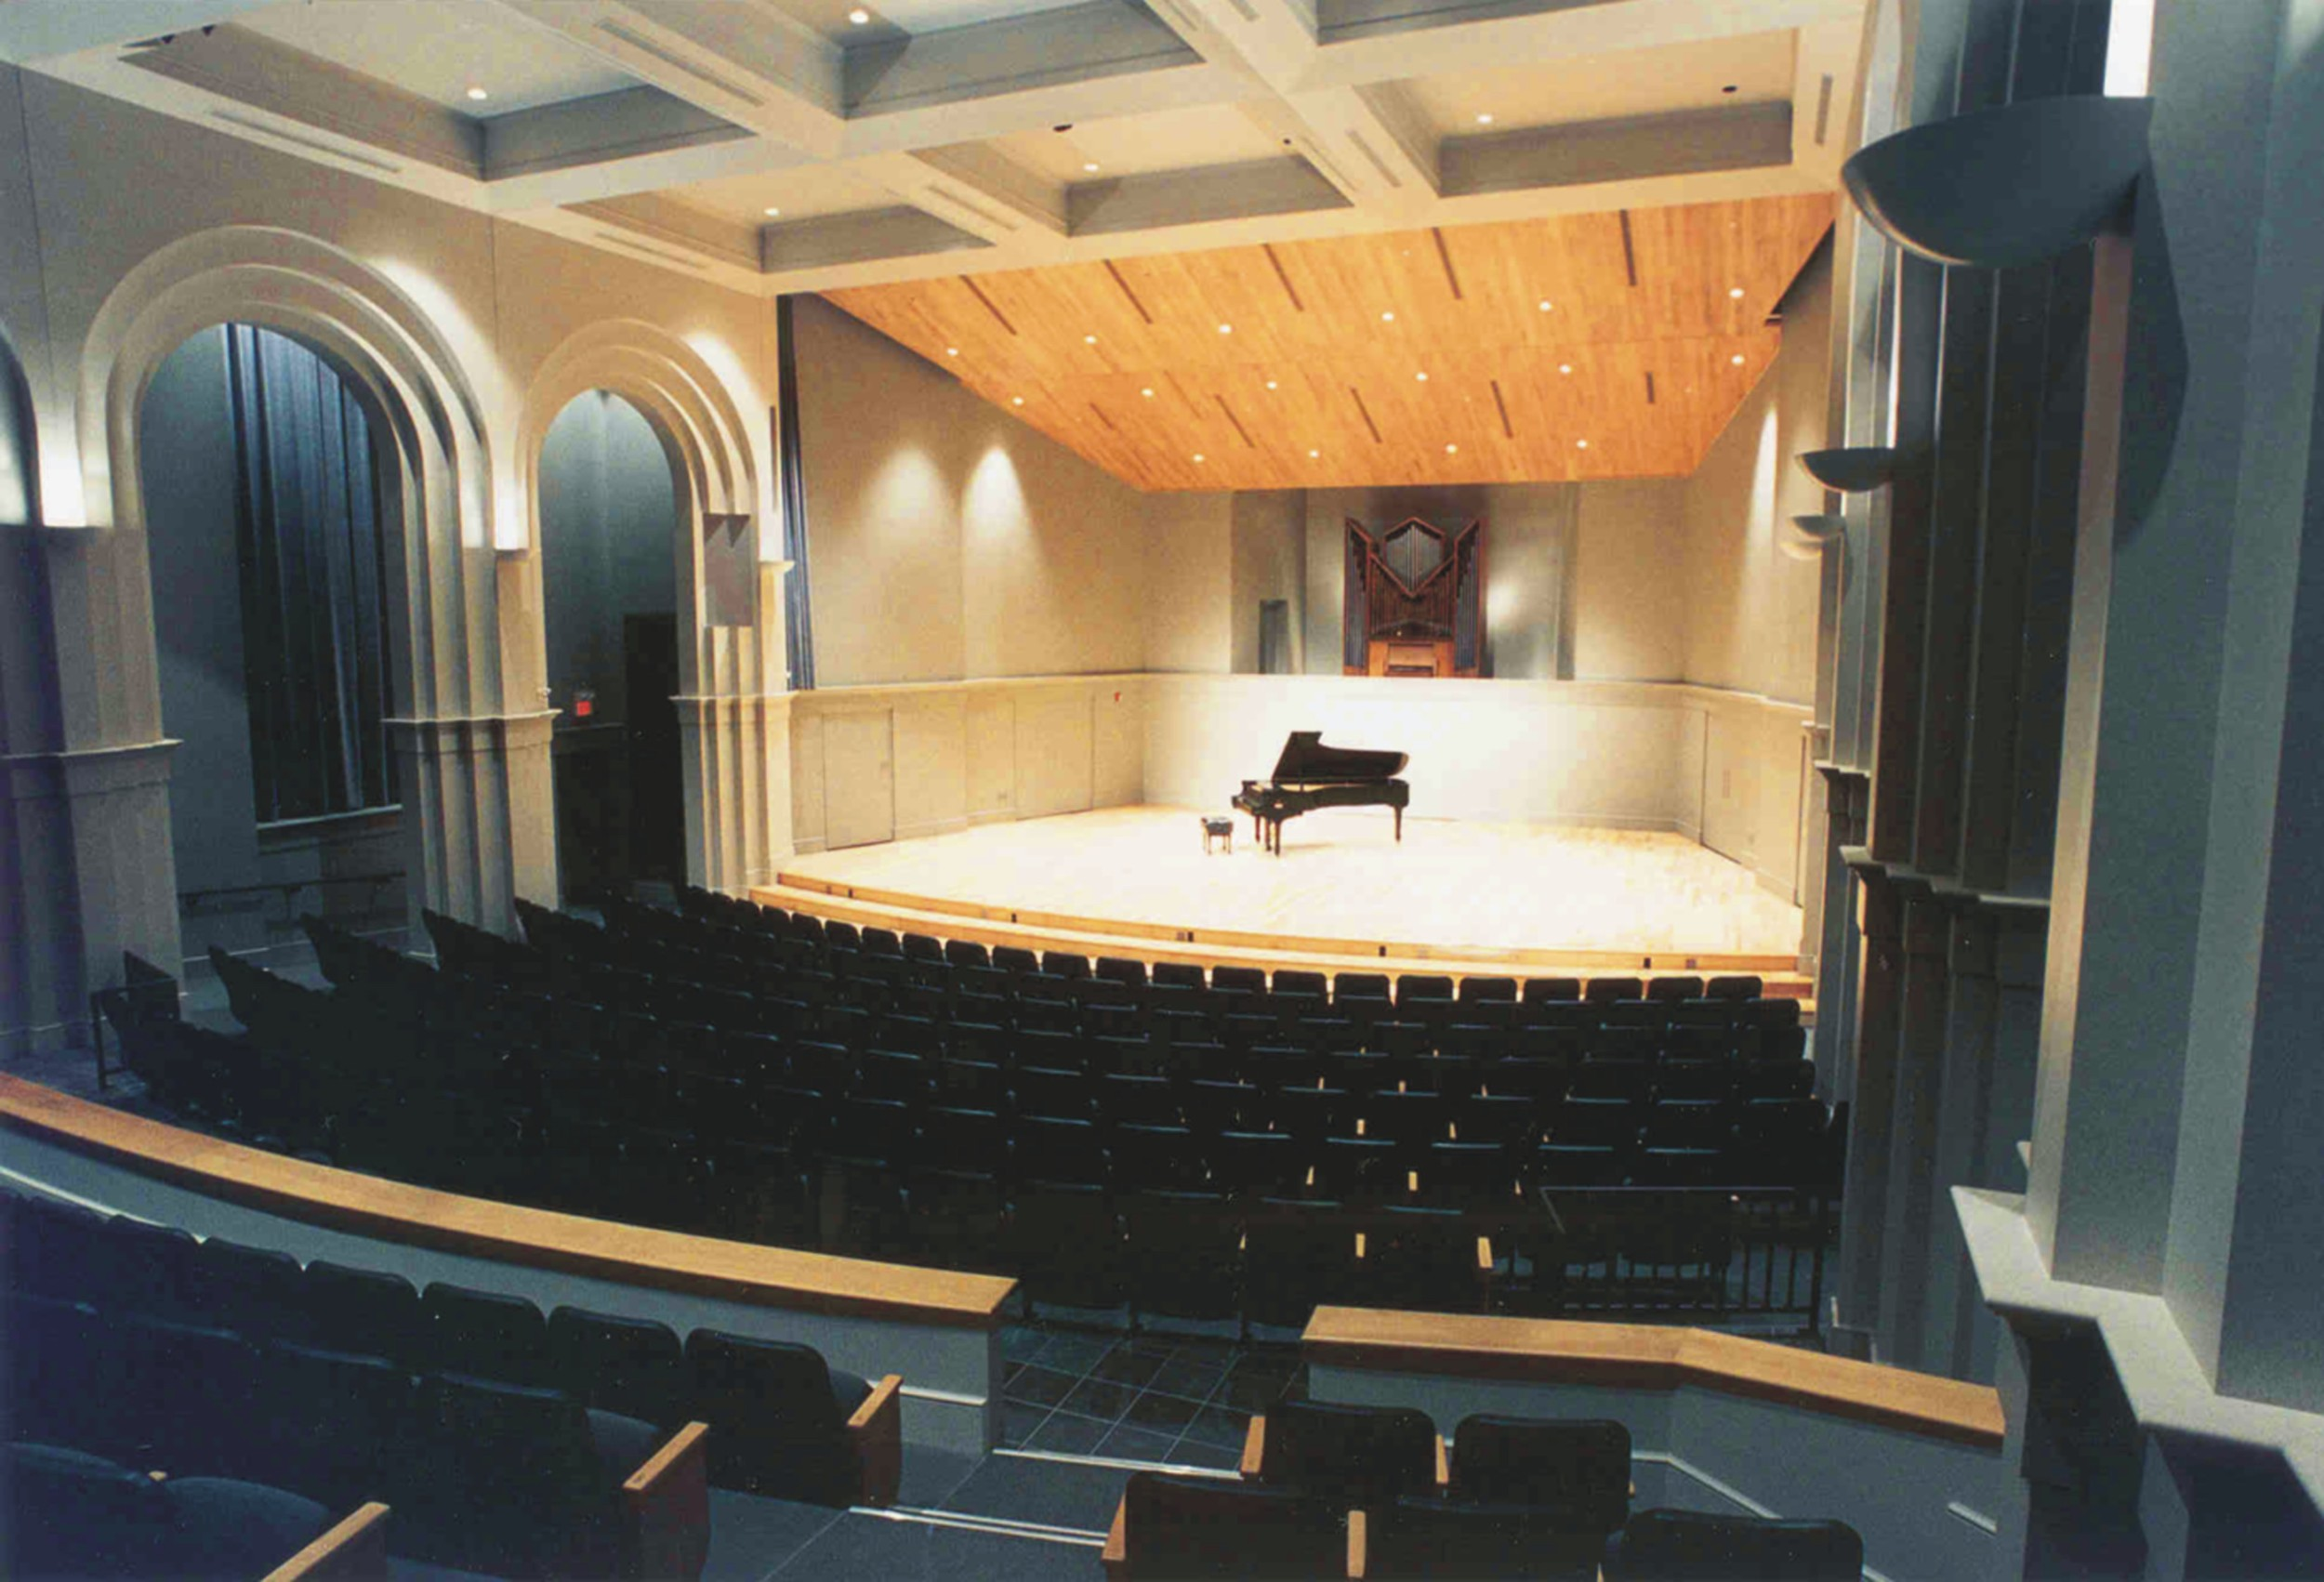 www.rcmarchitects.com - bluffton university - yoder recital hall (1)